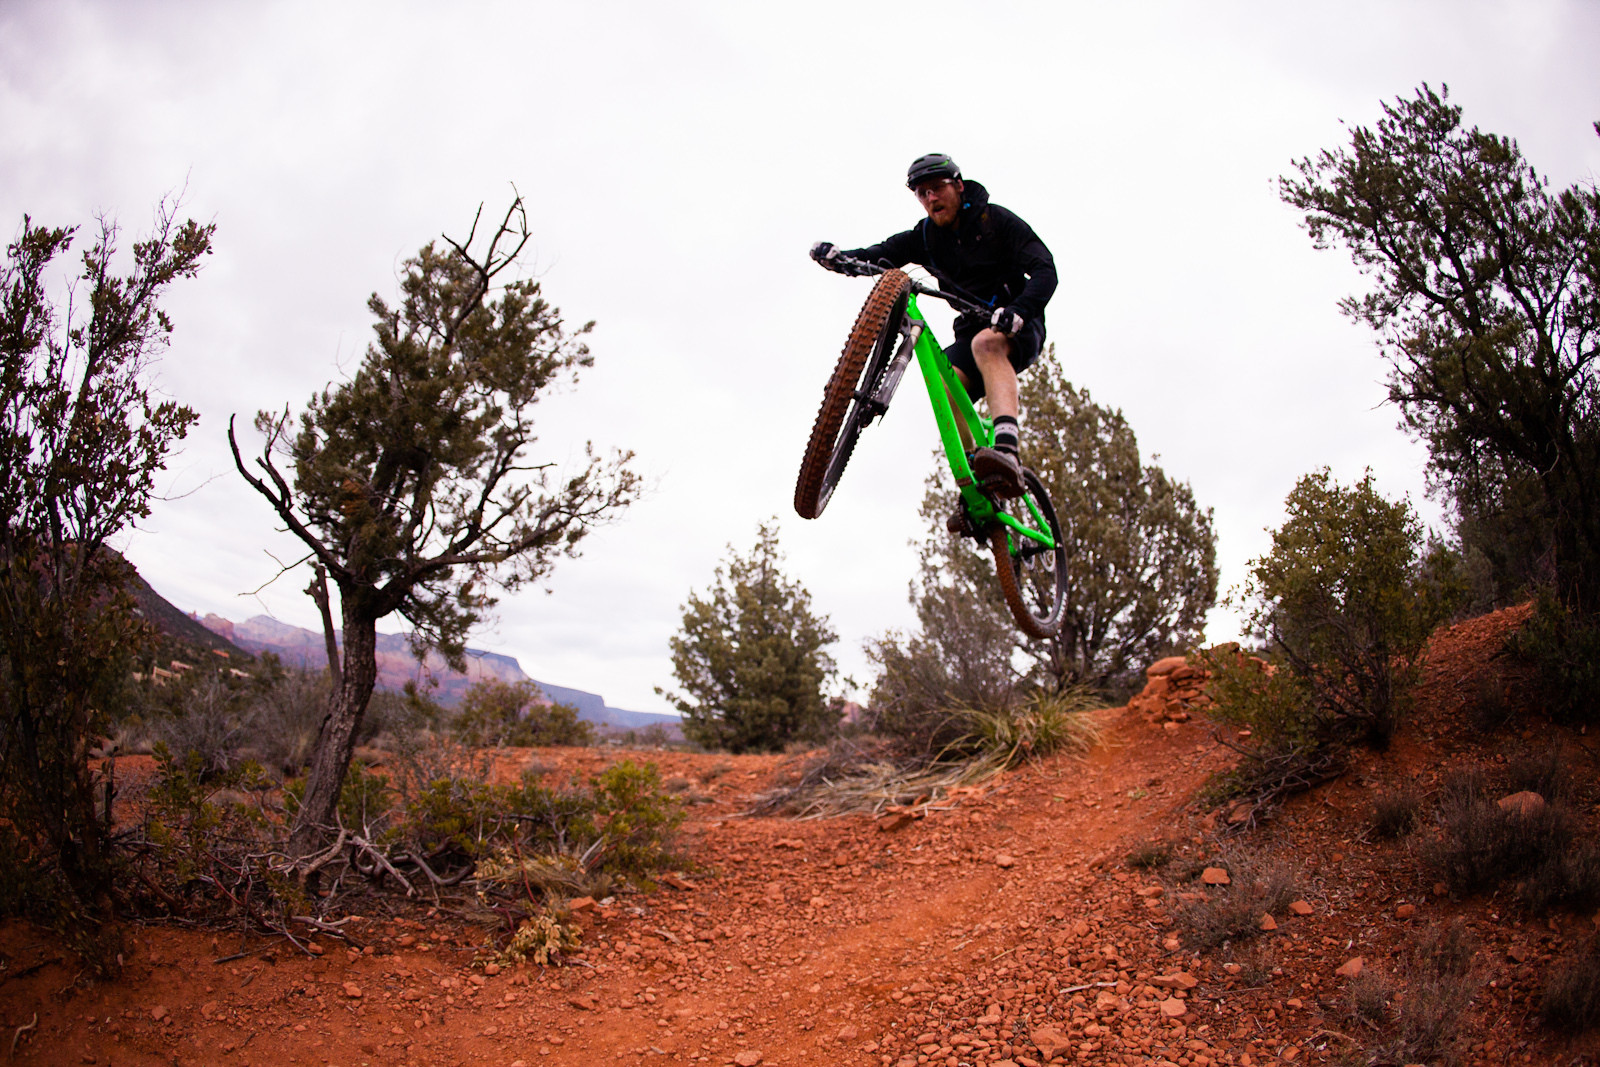 2014 Commencal Meta Hip Hop - 2014 Test Sessions: Commencal Meta Hip Hop - Mountain Biking Pictures - Vital MTB